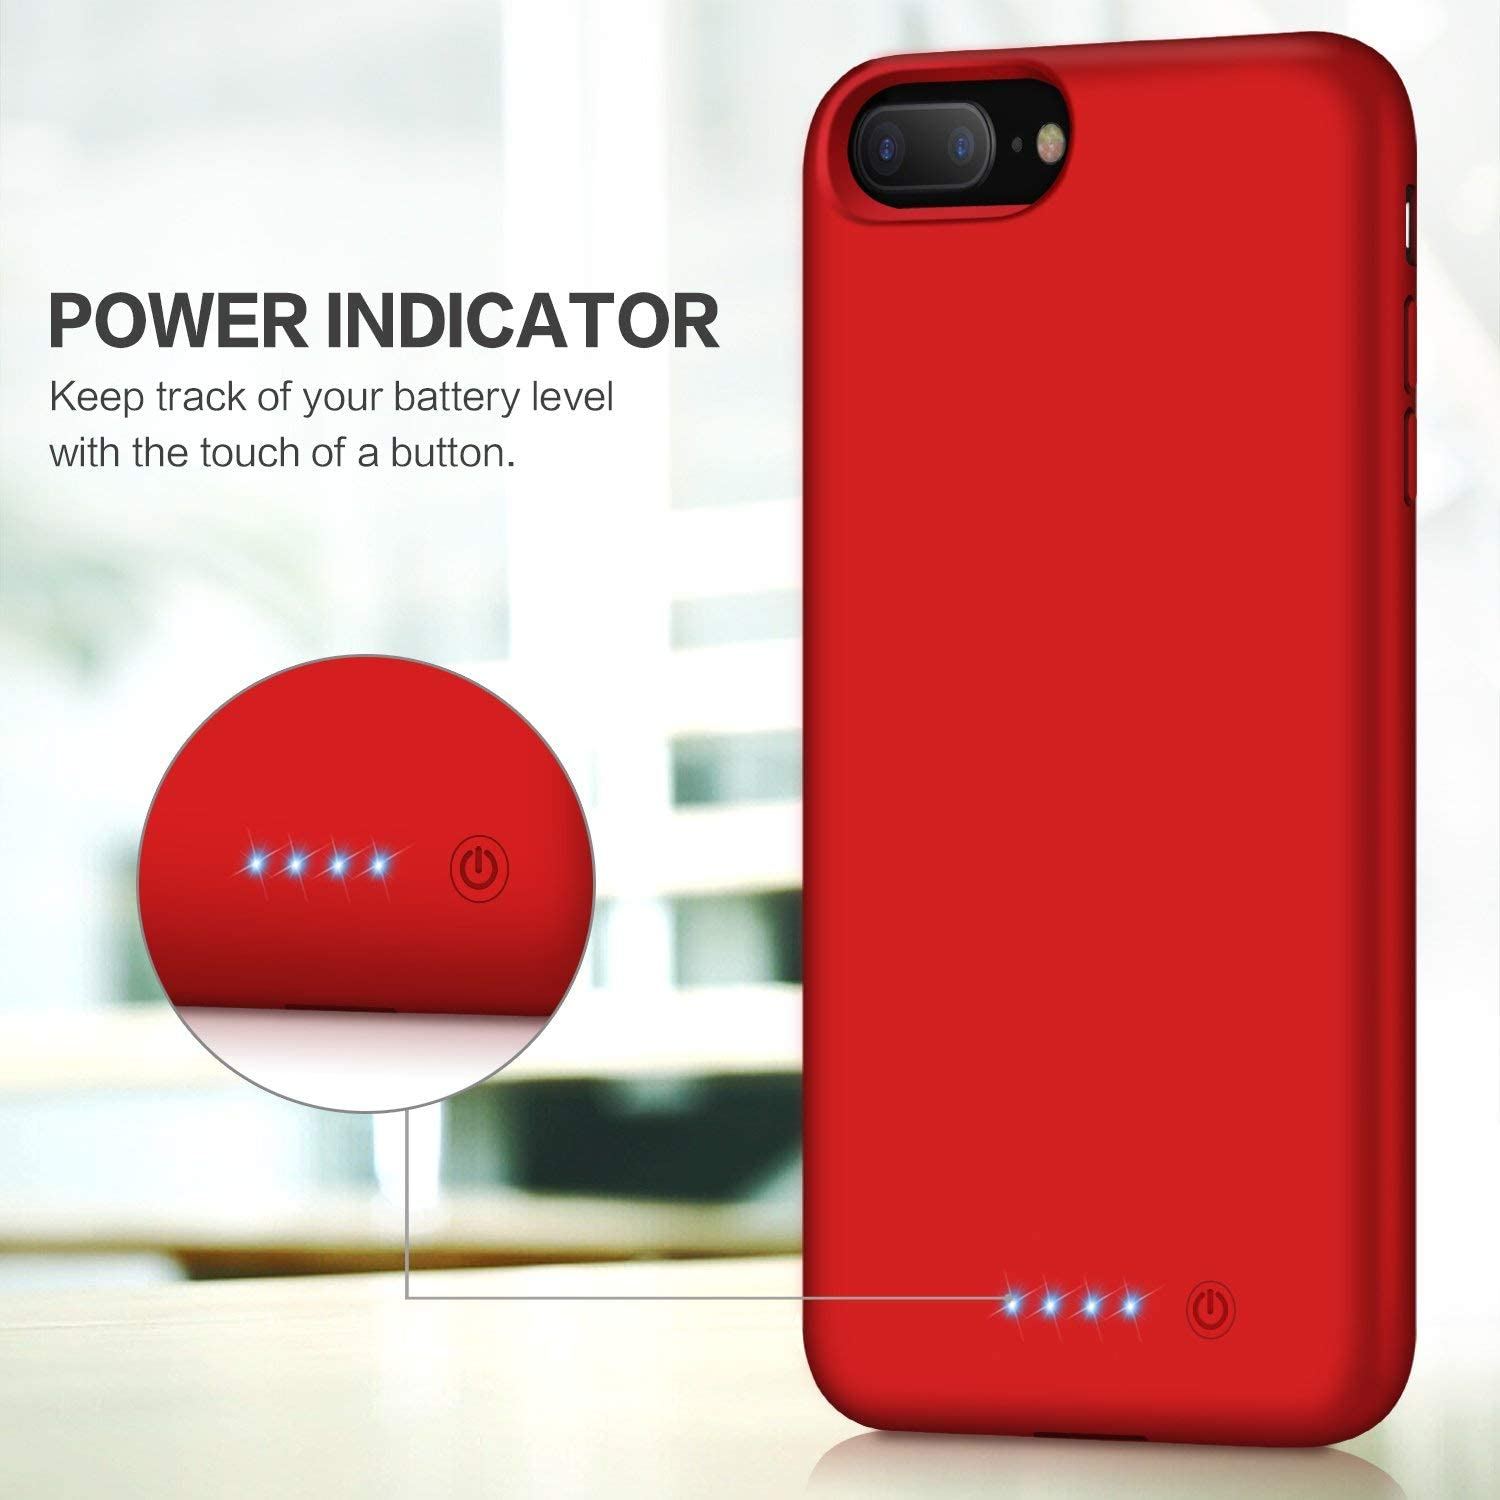 VOOE Battery Case for iPhone 7 Plus// 8 Plus 8500mAh Portable Battery Smart Pack Rechargeable Protective Battery Case for iPhone 7 Plus// 8 Plus External Charger Cover 5.5 inch Charging Case Red